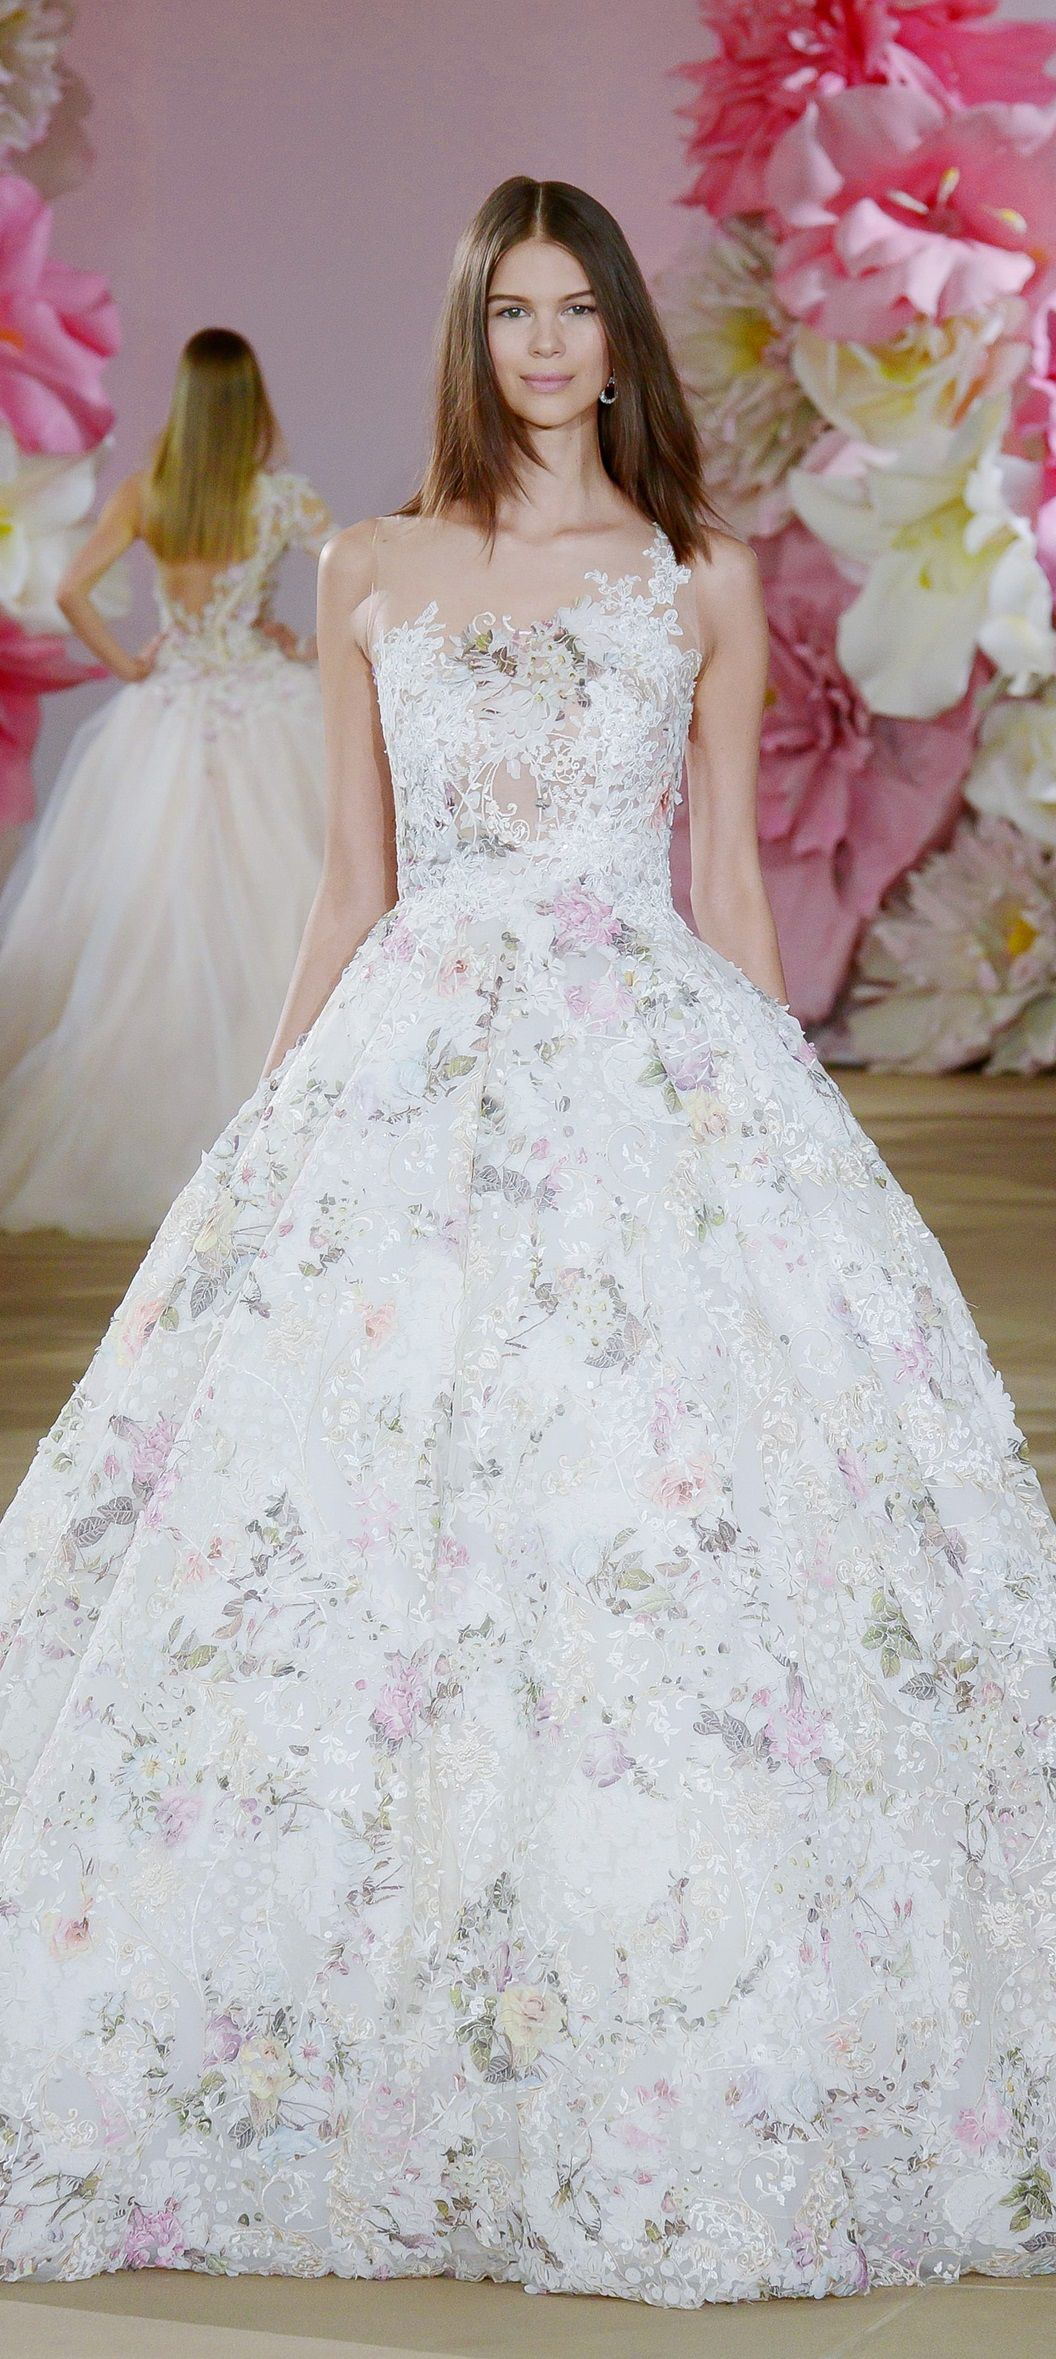 Floral print wedding dresses  Ines di Santo Bridal  Style  Pinterest